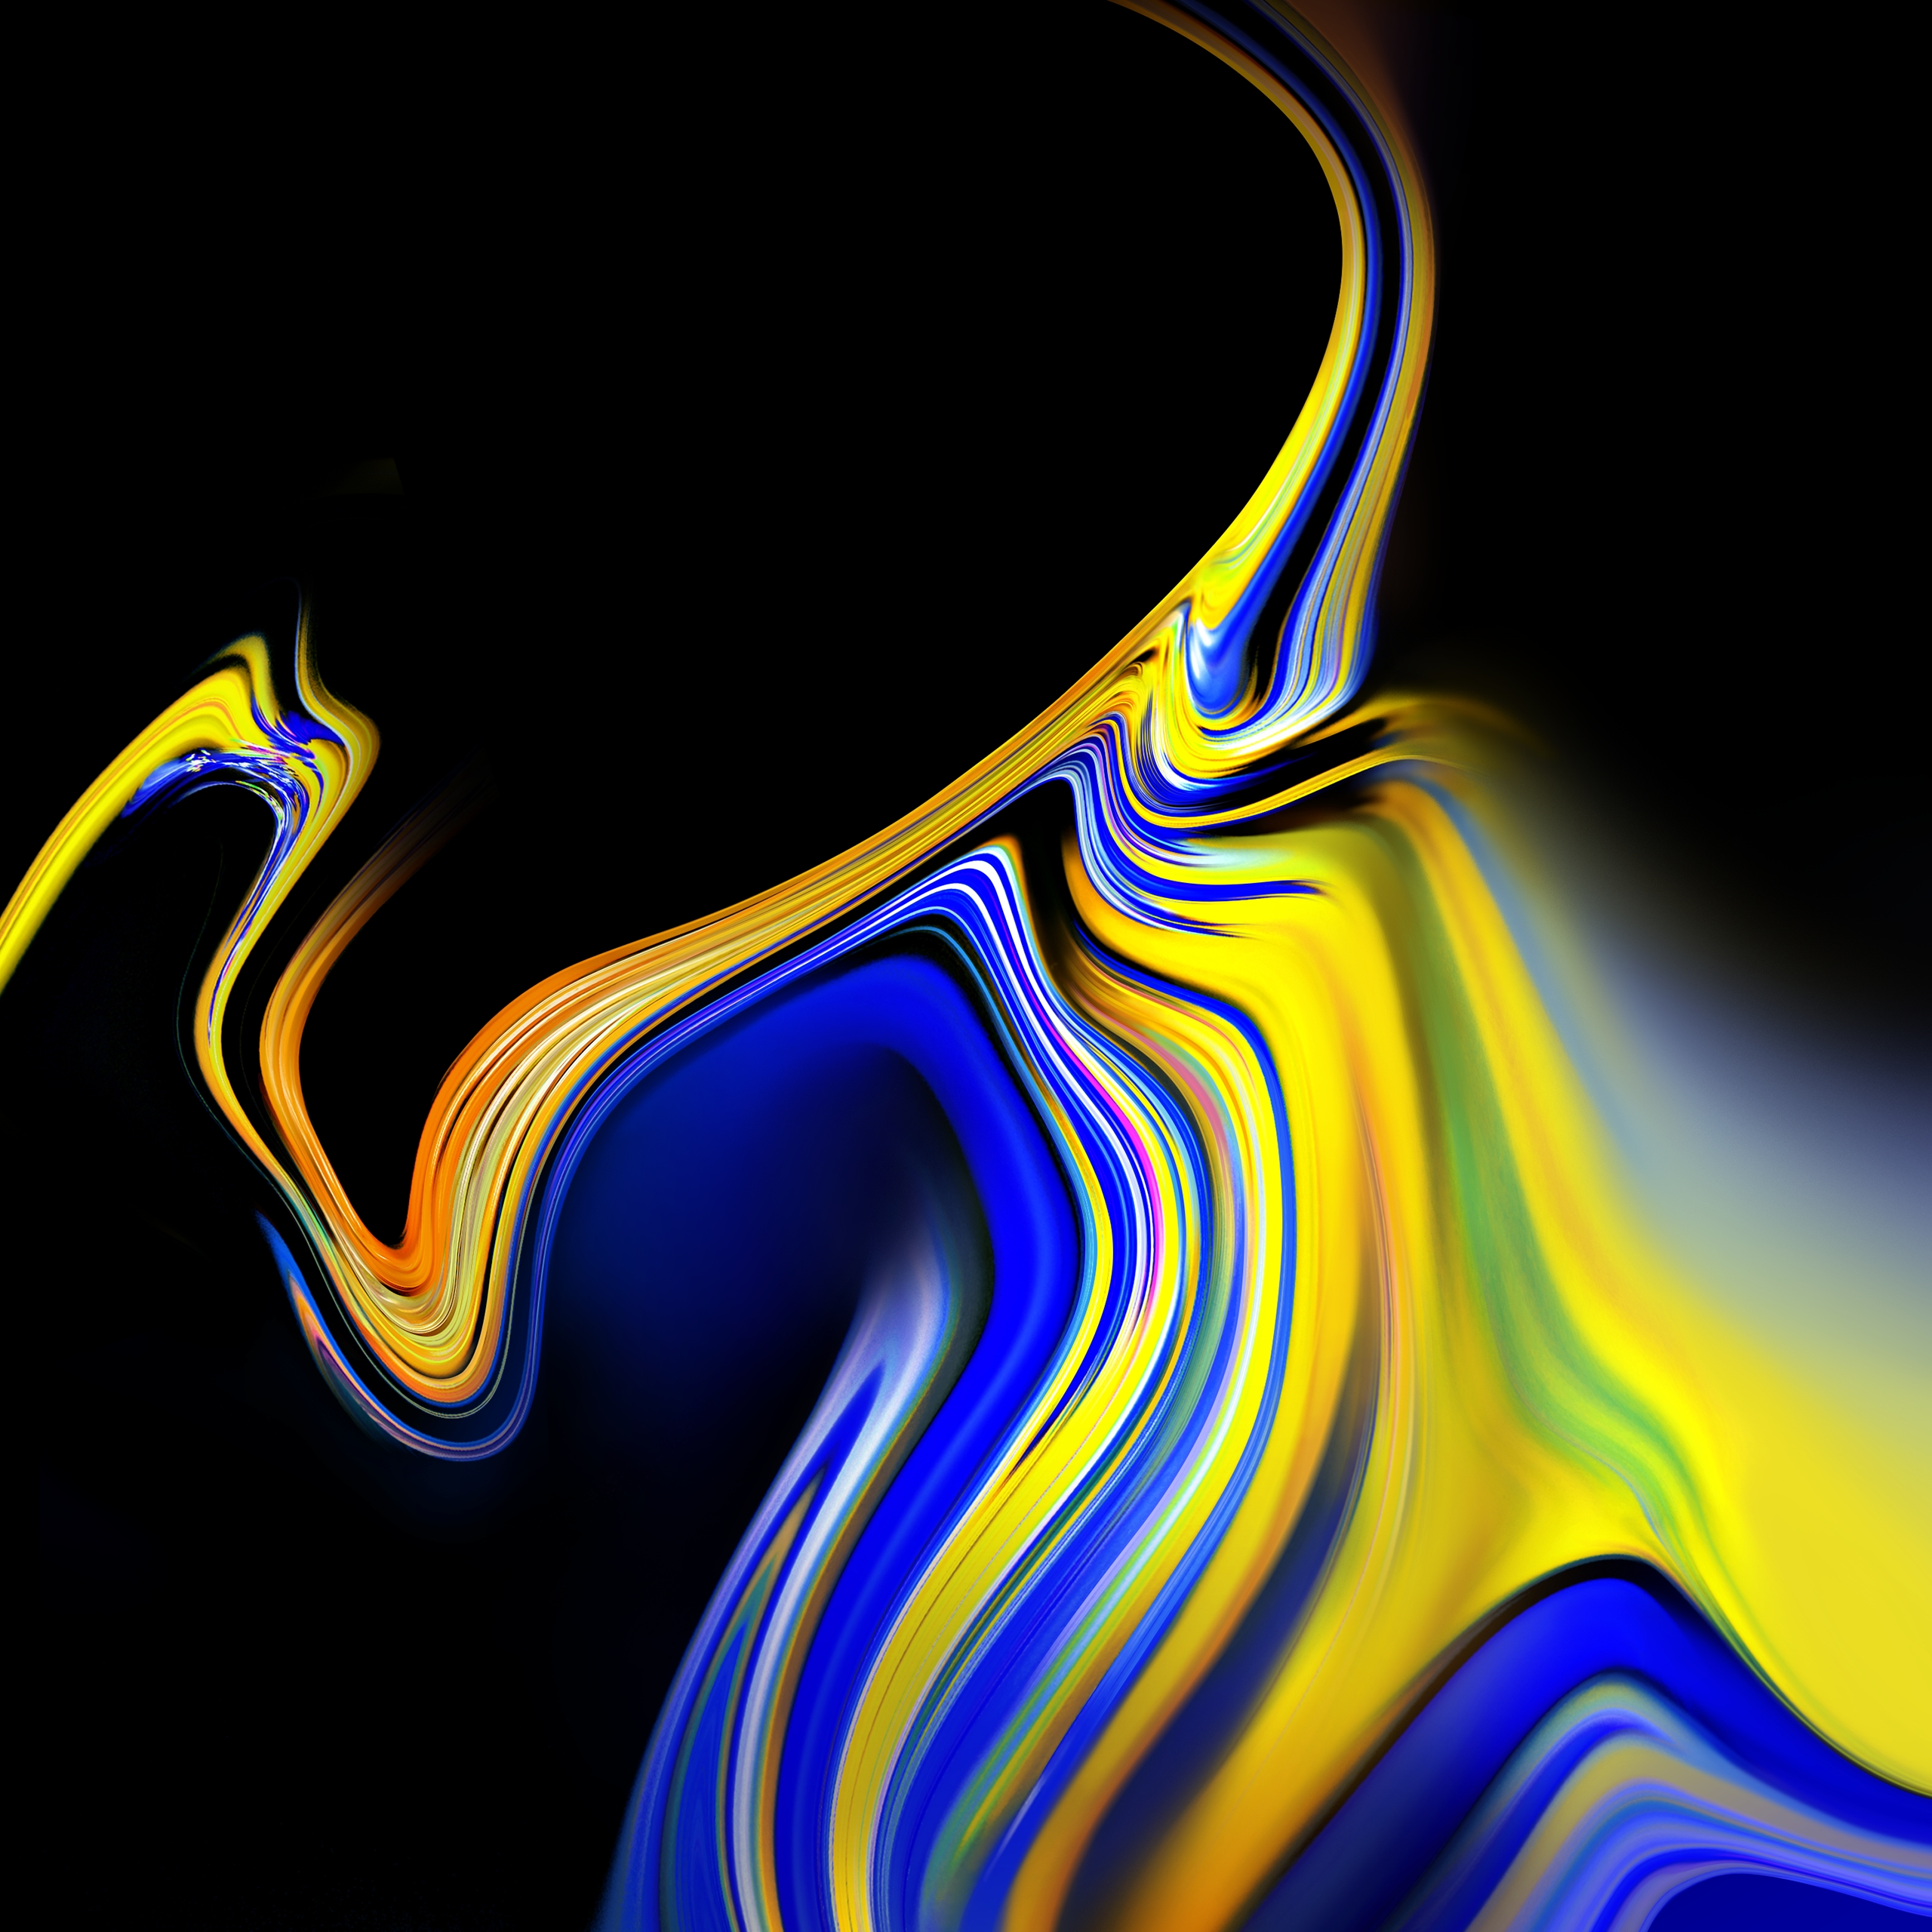 Download The Samsung Galaxy Note 9 S Default Wallpapers Here Gallery 9to5google